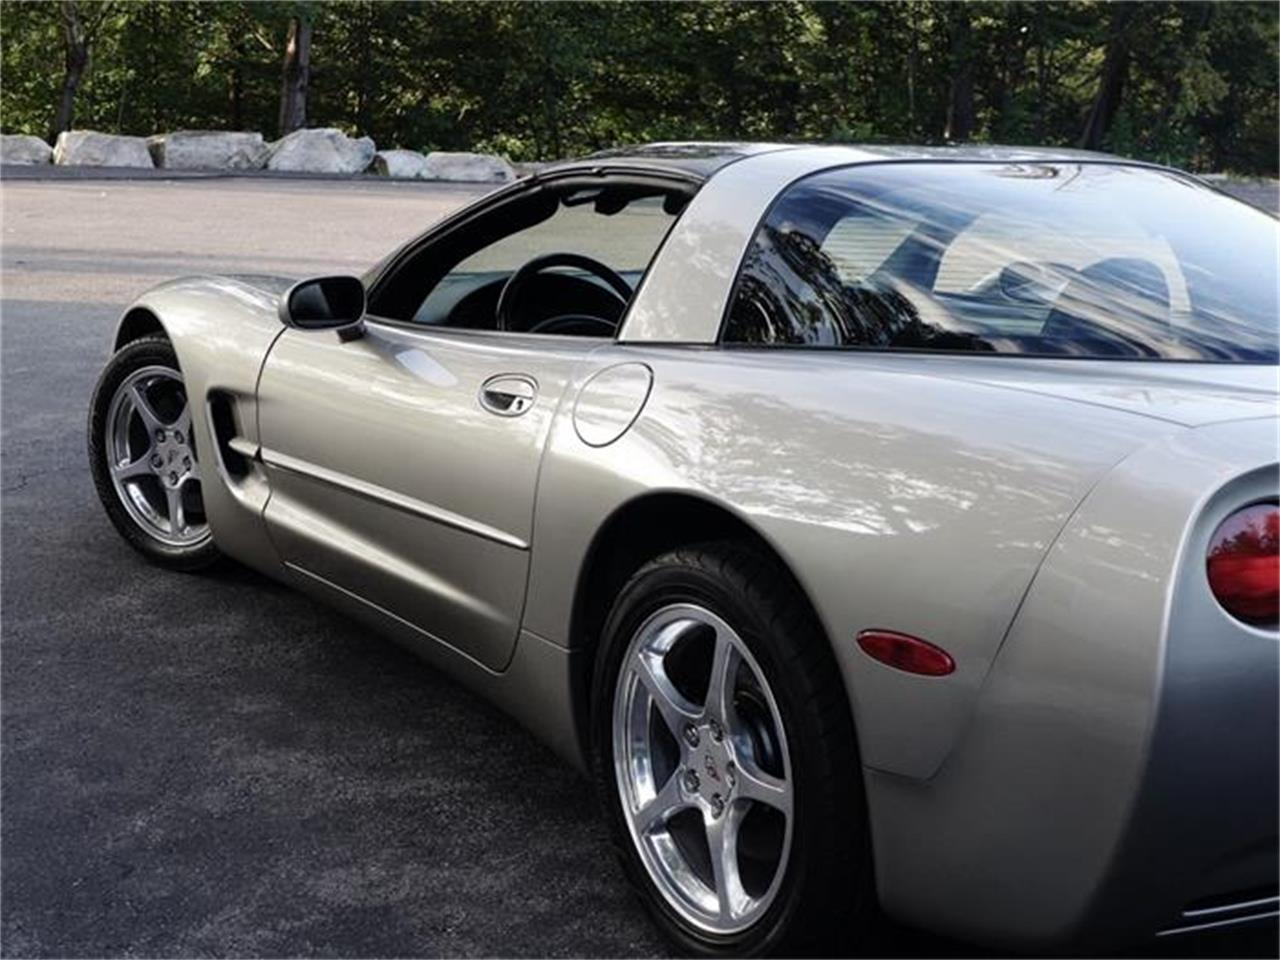 Large Picture of '99 Corvette located in Old Forge Pennsylvania - HB0J